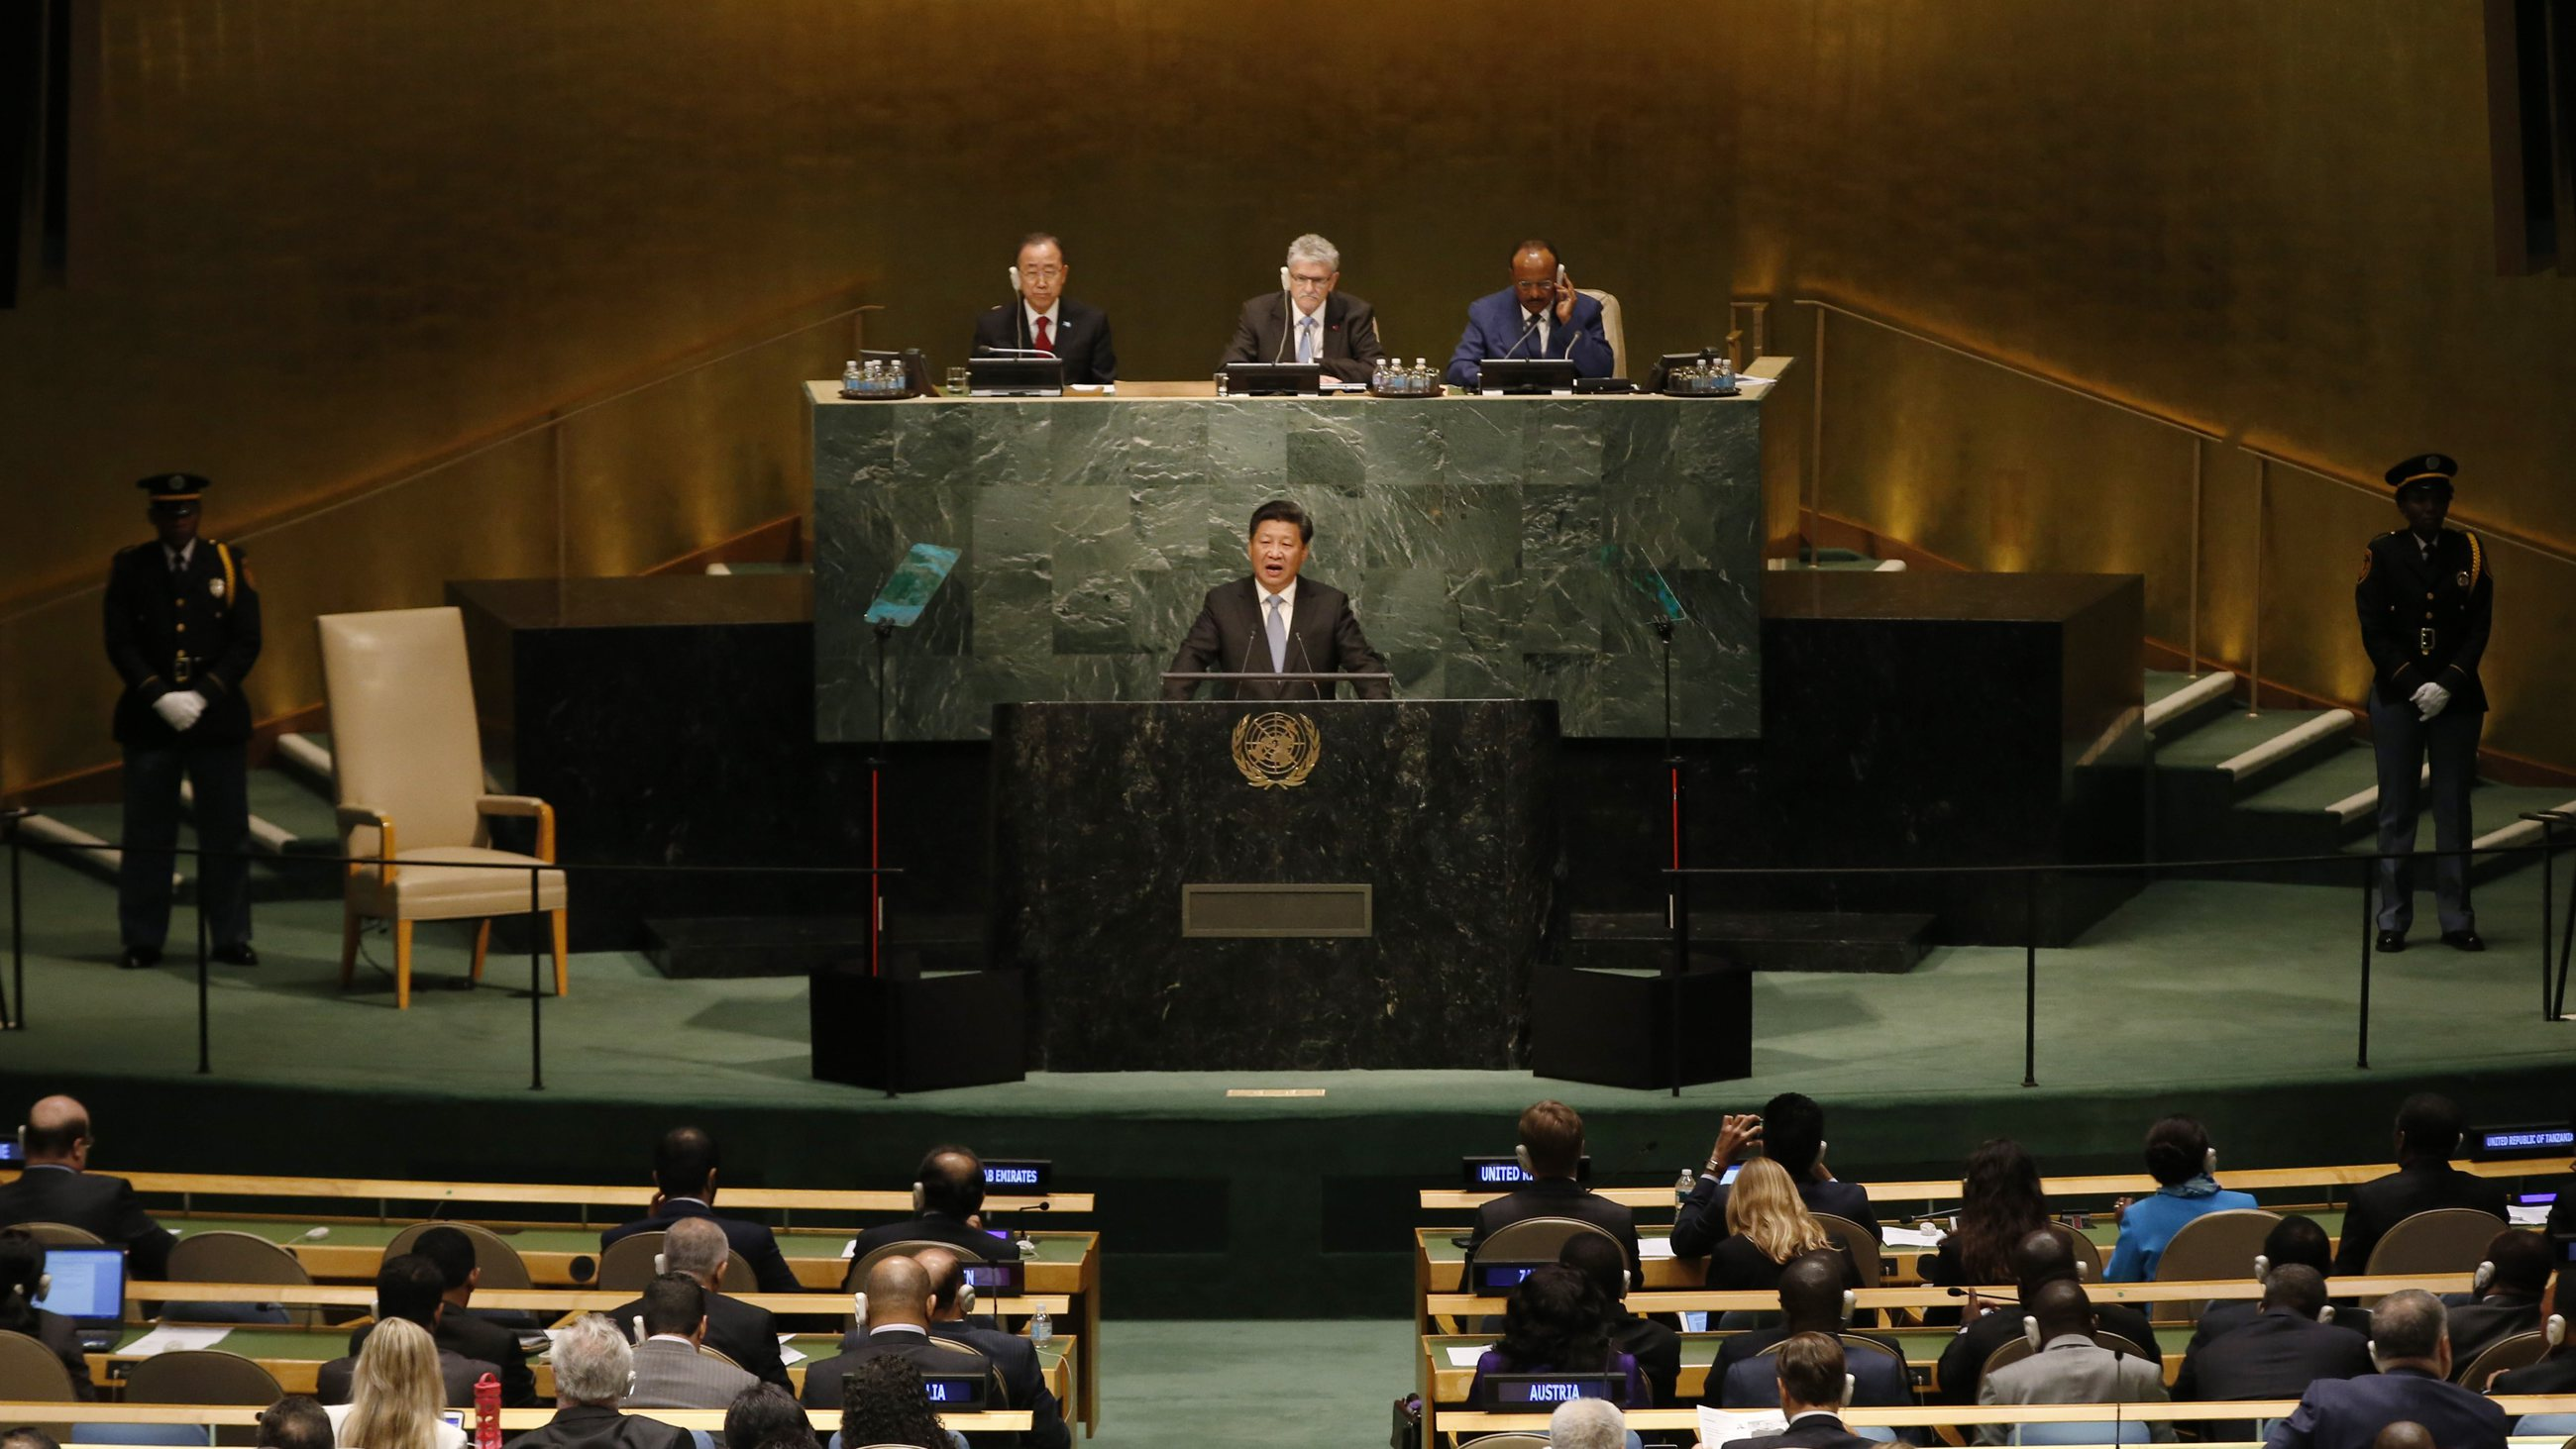 President Xi Jinping of China addresses attendees during the 70th session of the United Nations General Assembly at the U.N. Headquarters in New York, September 28, 2015.